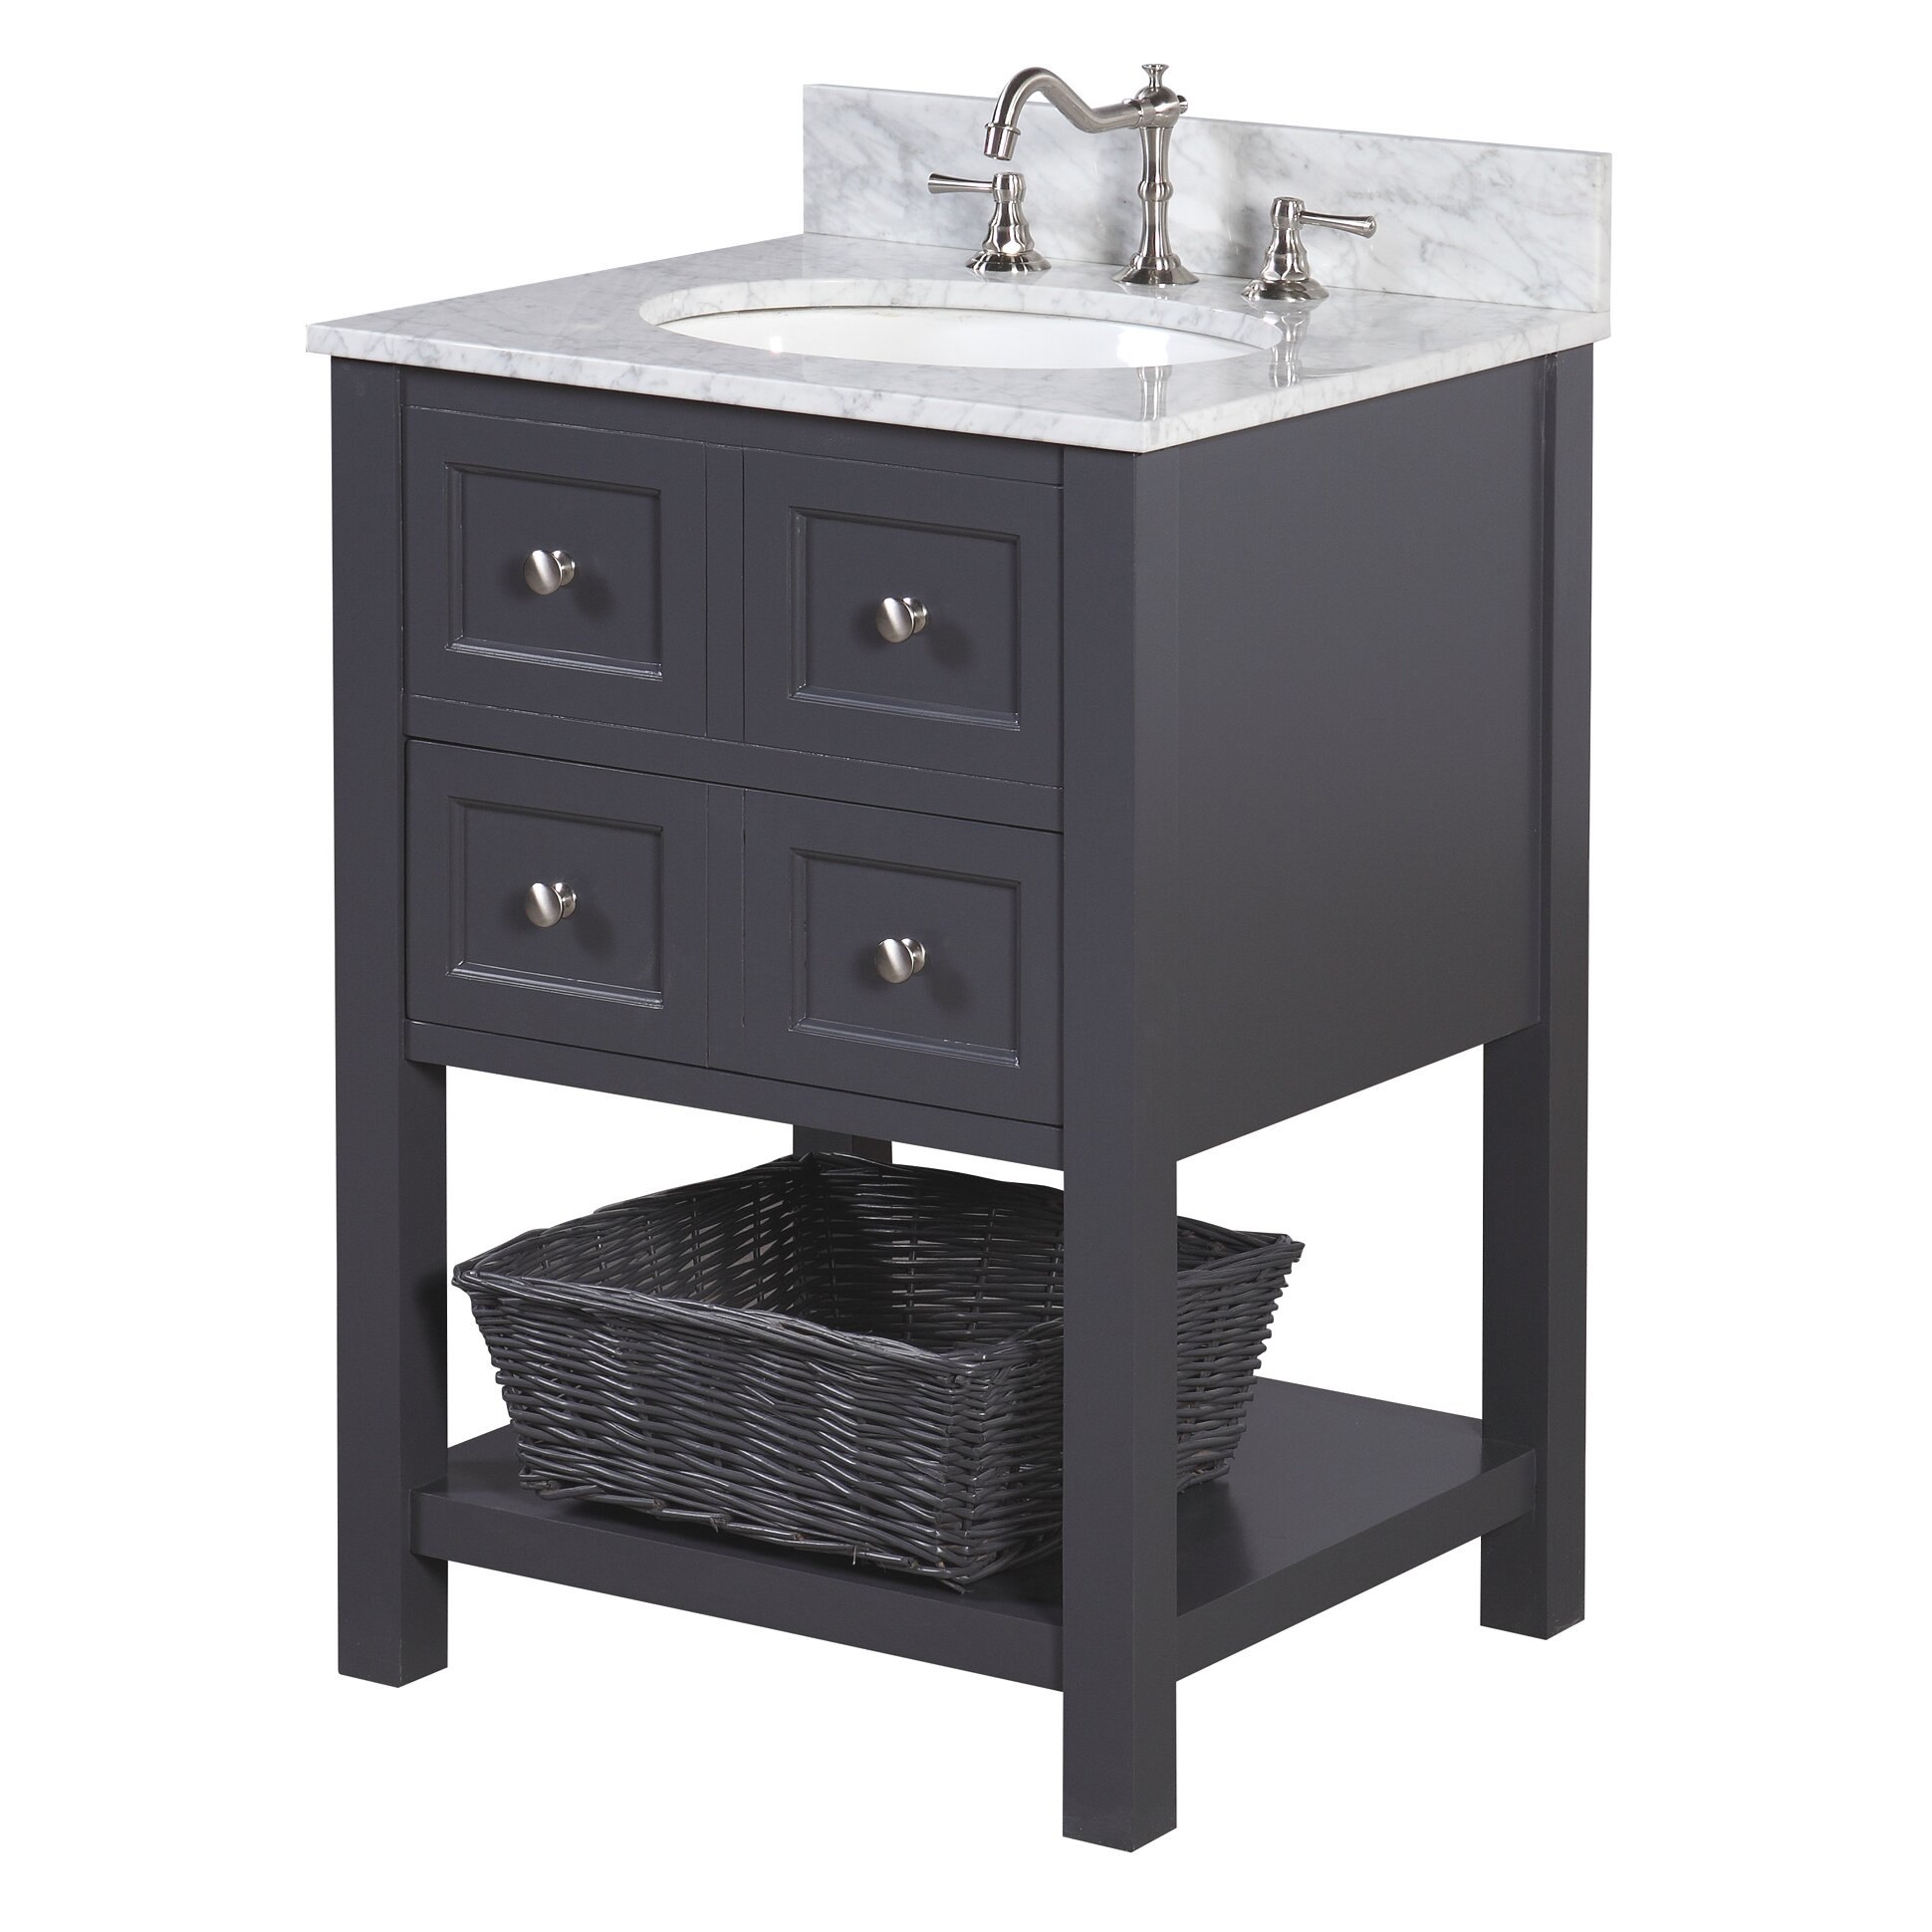 "kbc new yorker 24"" single bathroom vanity set & reviews 